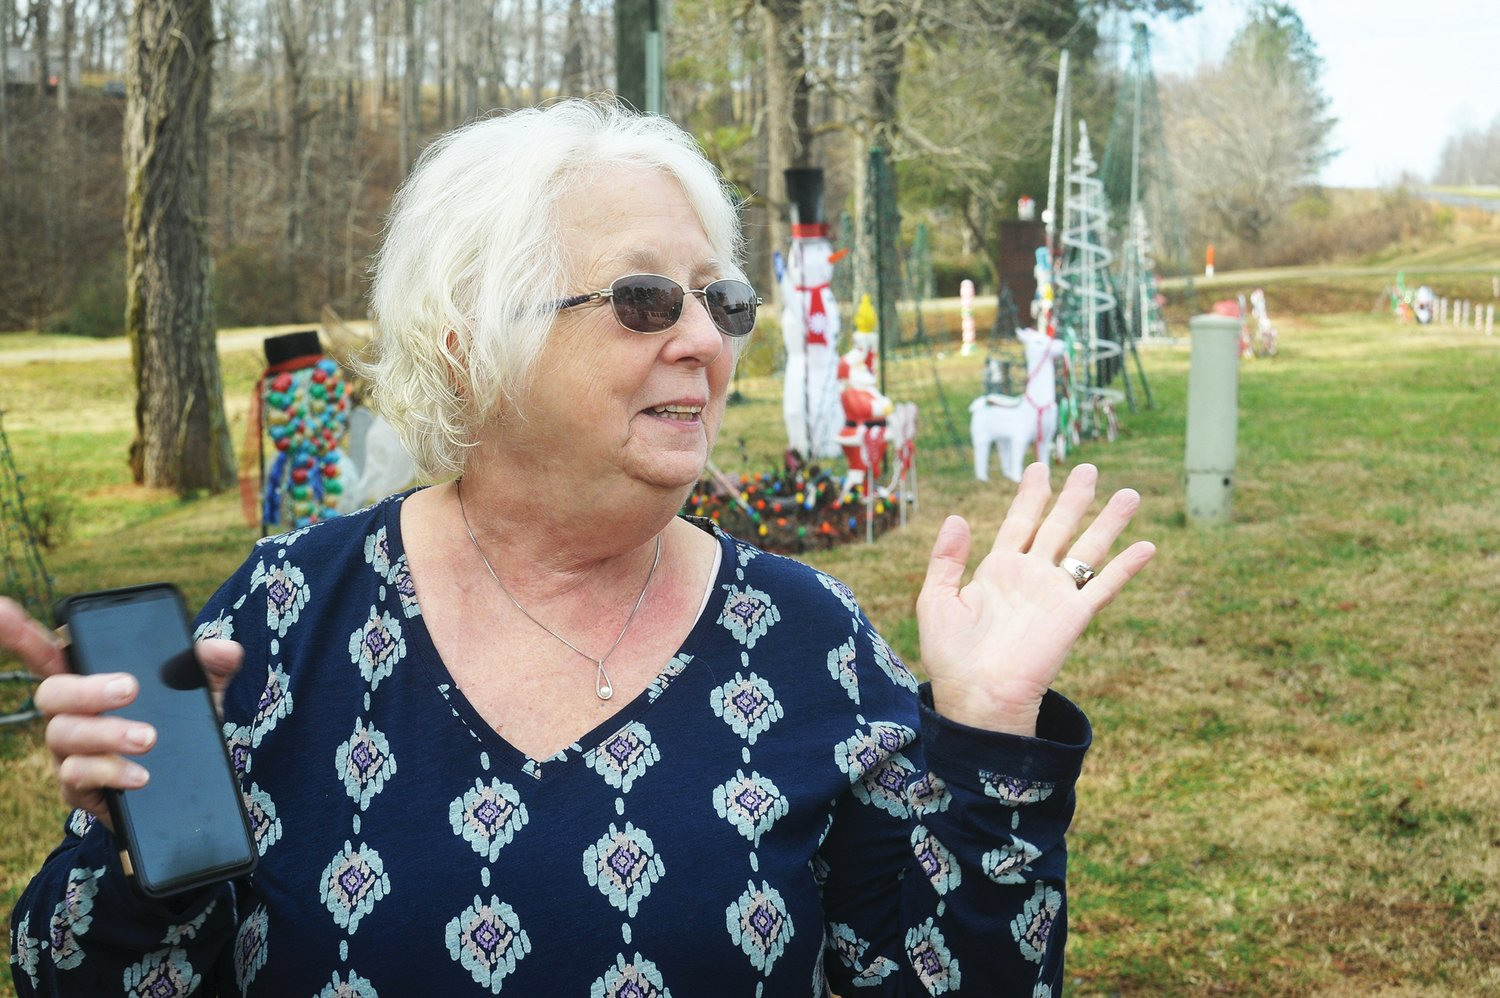 The yard lights are off during the day, but at night, Glenda Johnson says that she hears the sounds of Jake brakes and 18-wheeler horns to say thanks for the well-lit structure, sometimes at 3 a.m.